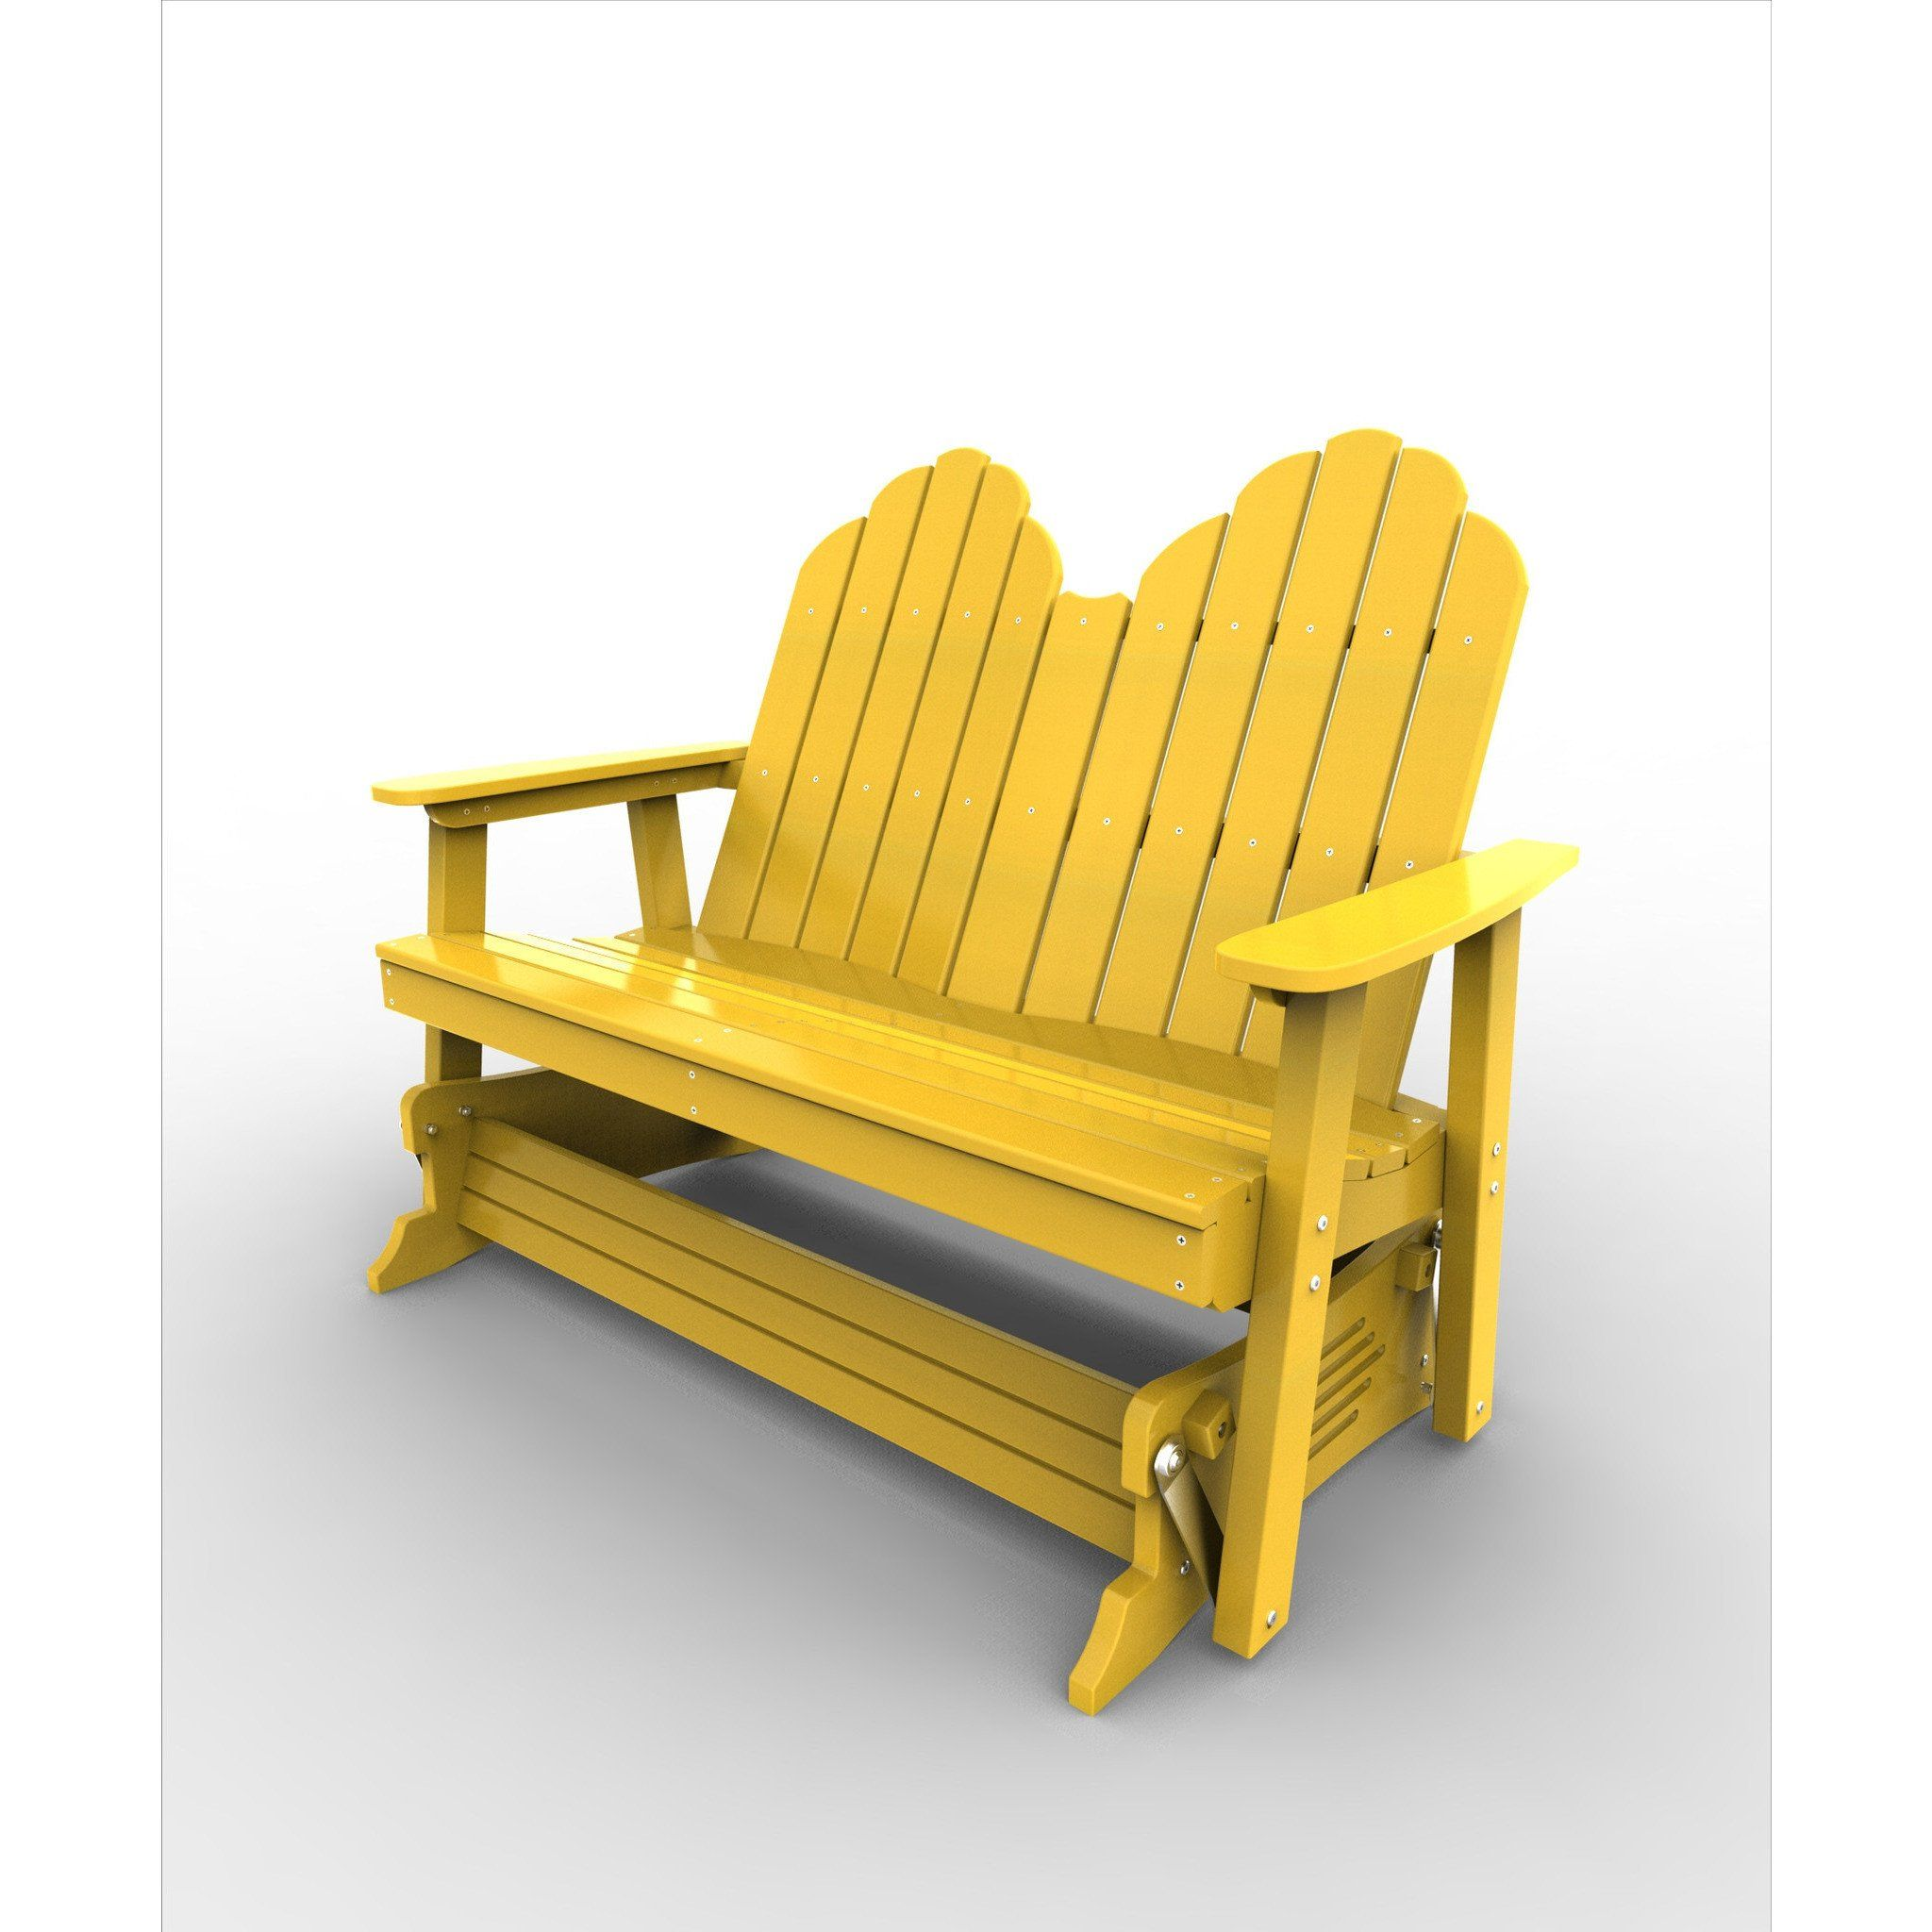 Malibu Outdoor Living Recycled Plastic Yarmouth Double Patio